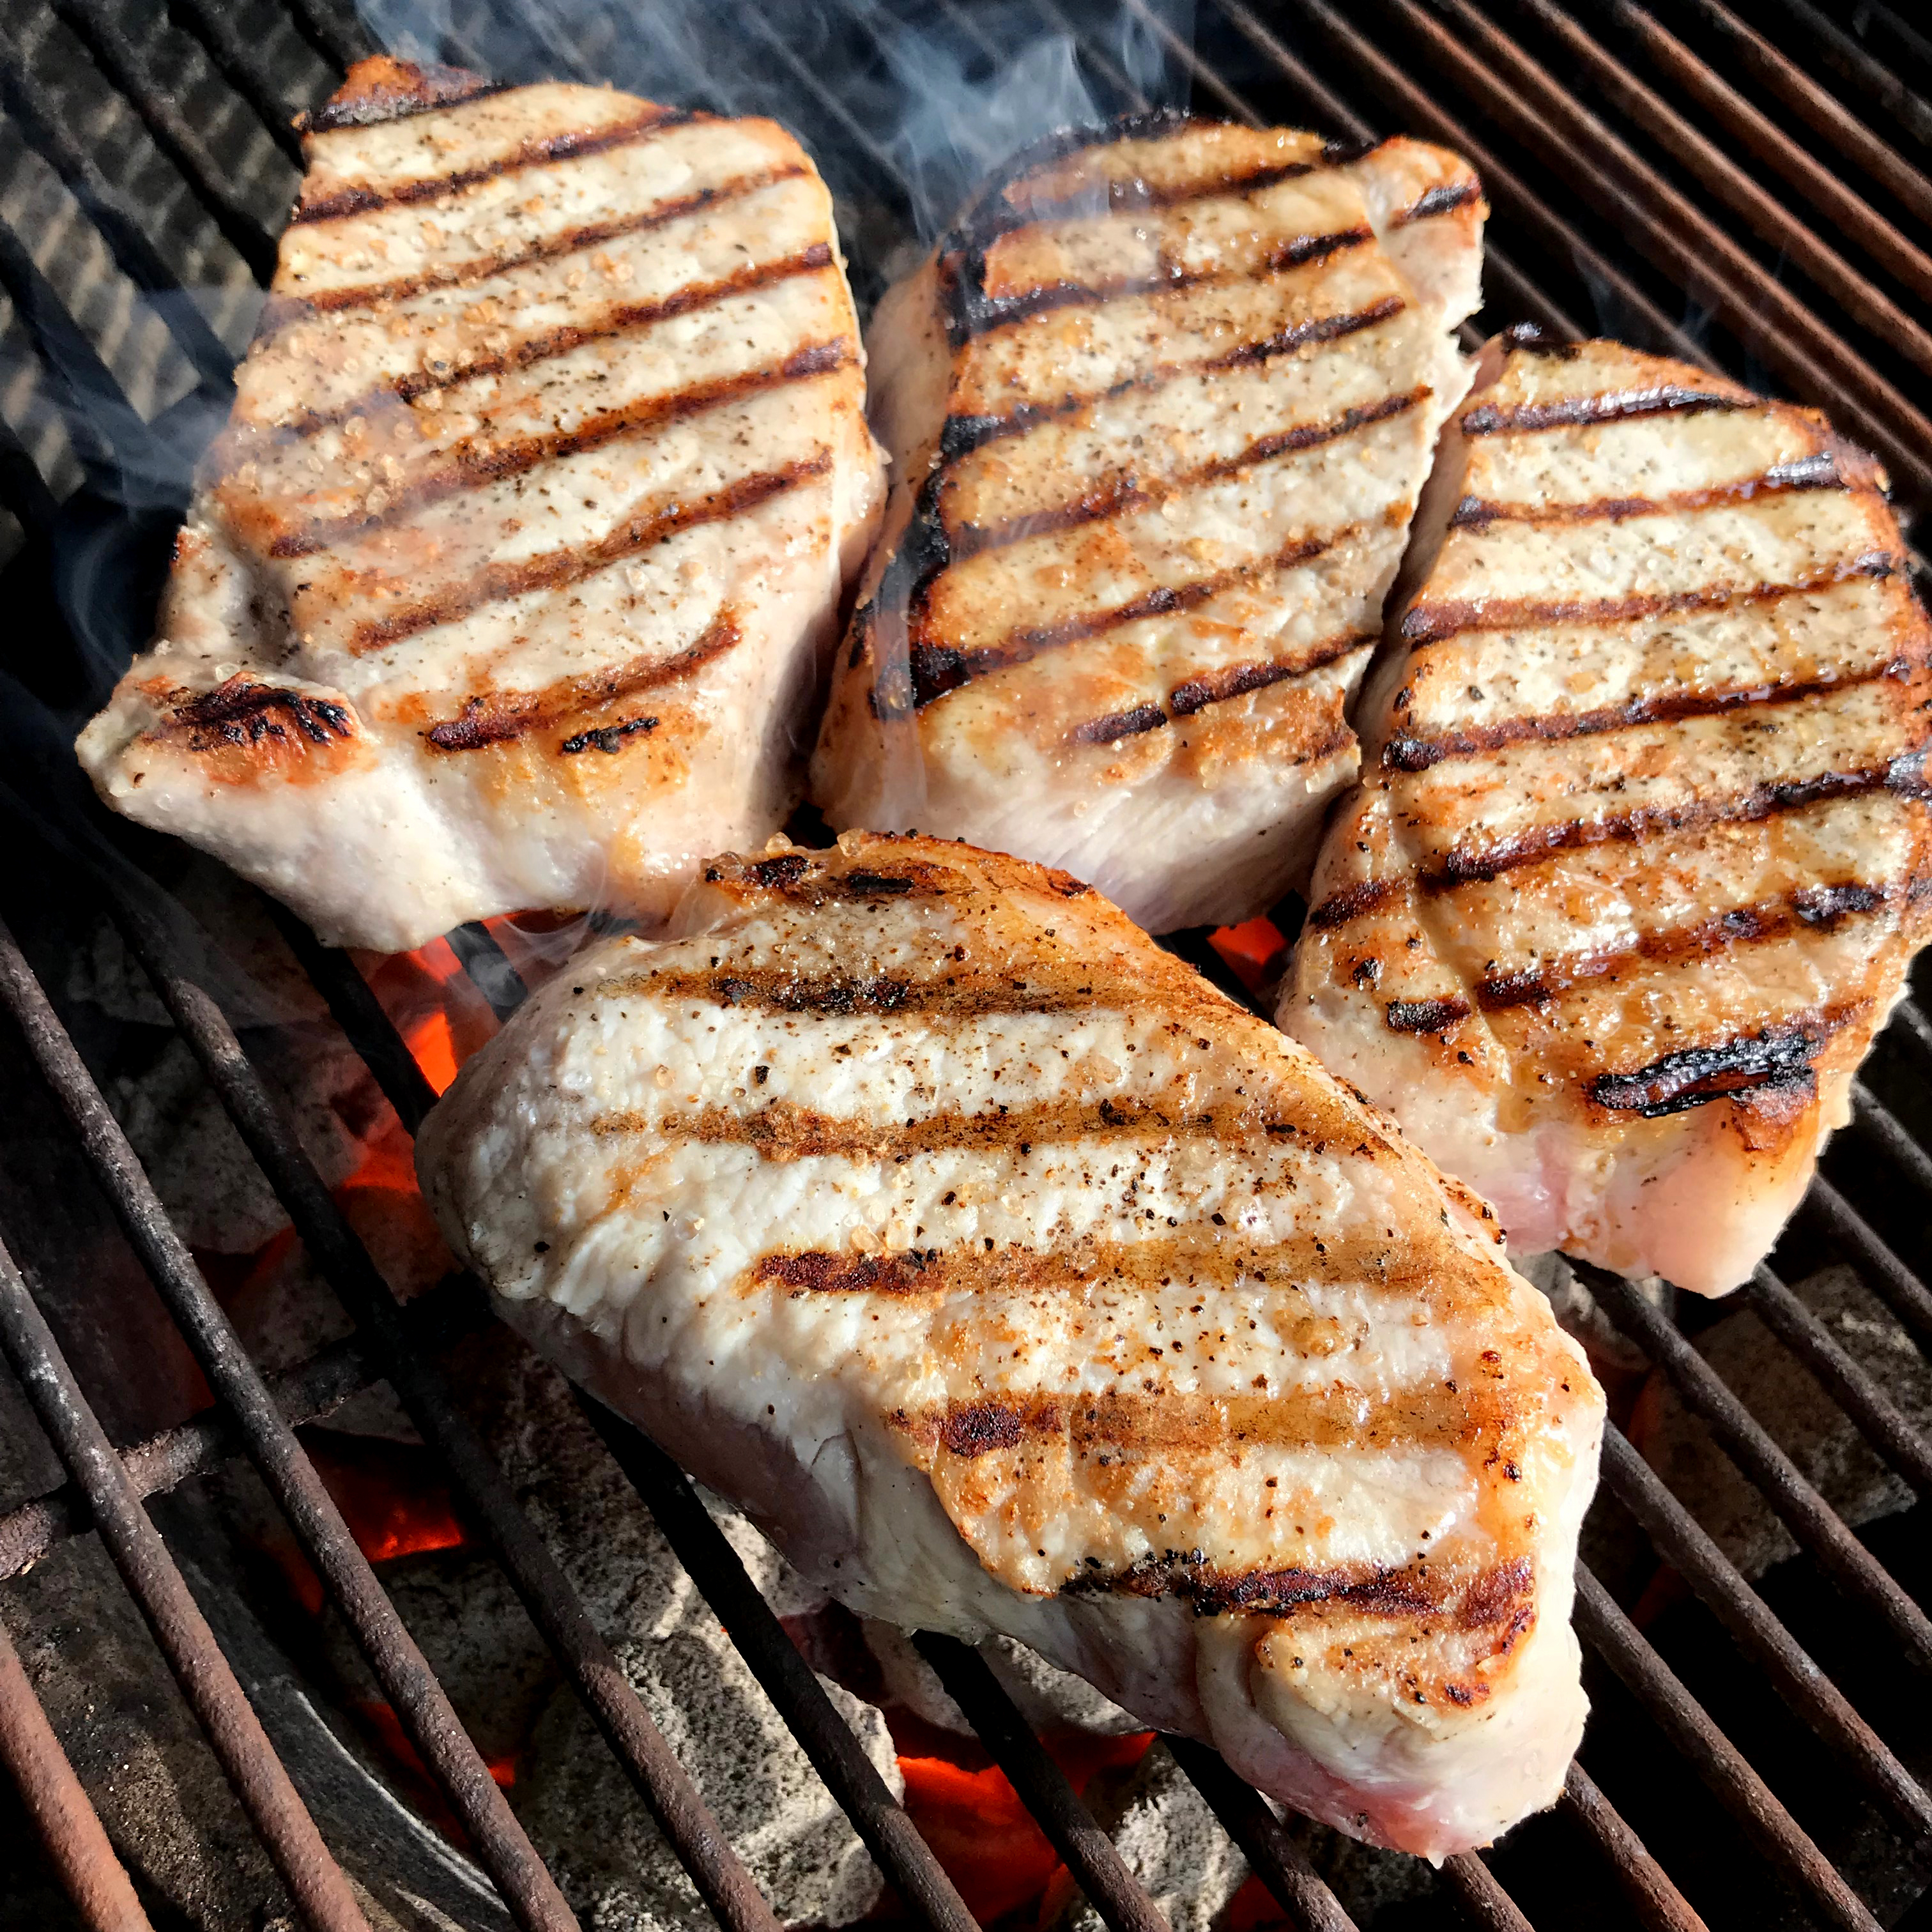 Sear your pork cutlets and move away from heat for about 20 minutes, or until an internal temperature of 145 degrees.